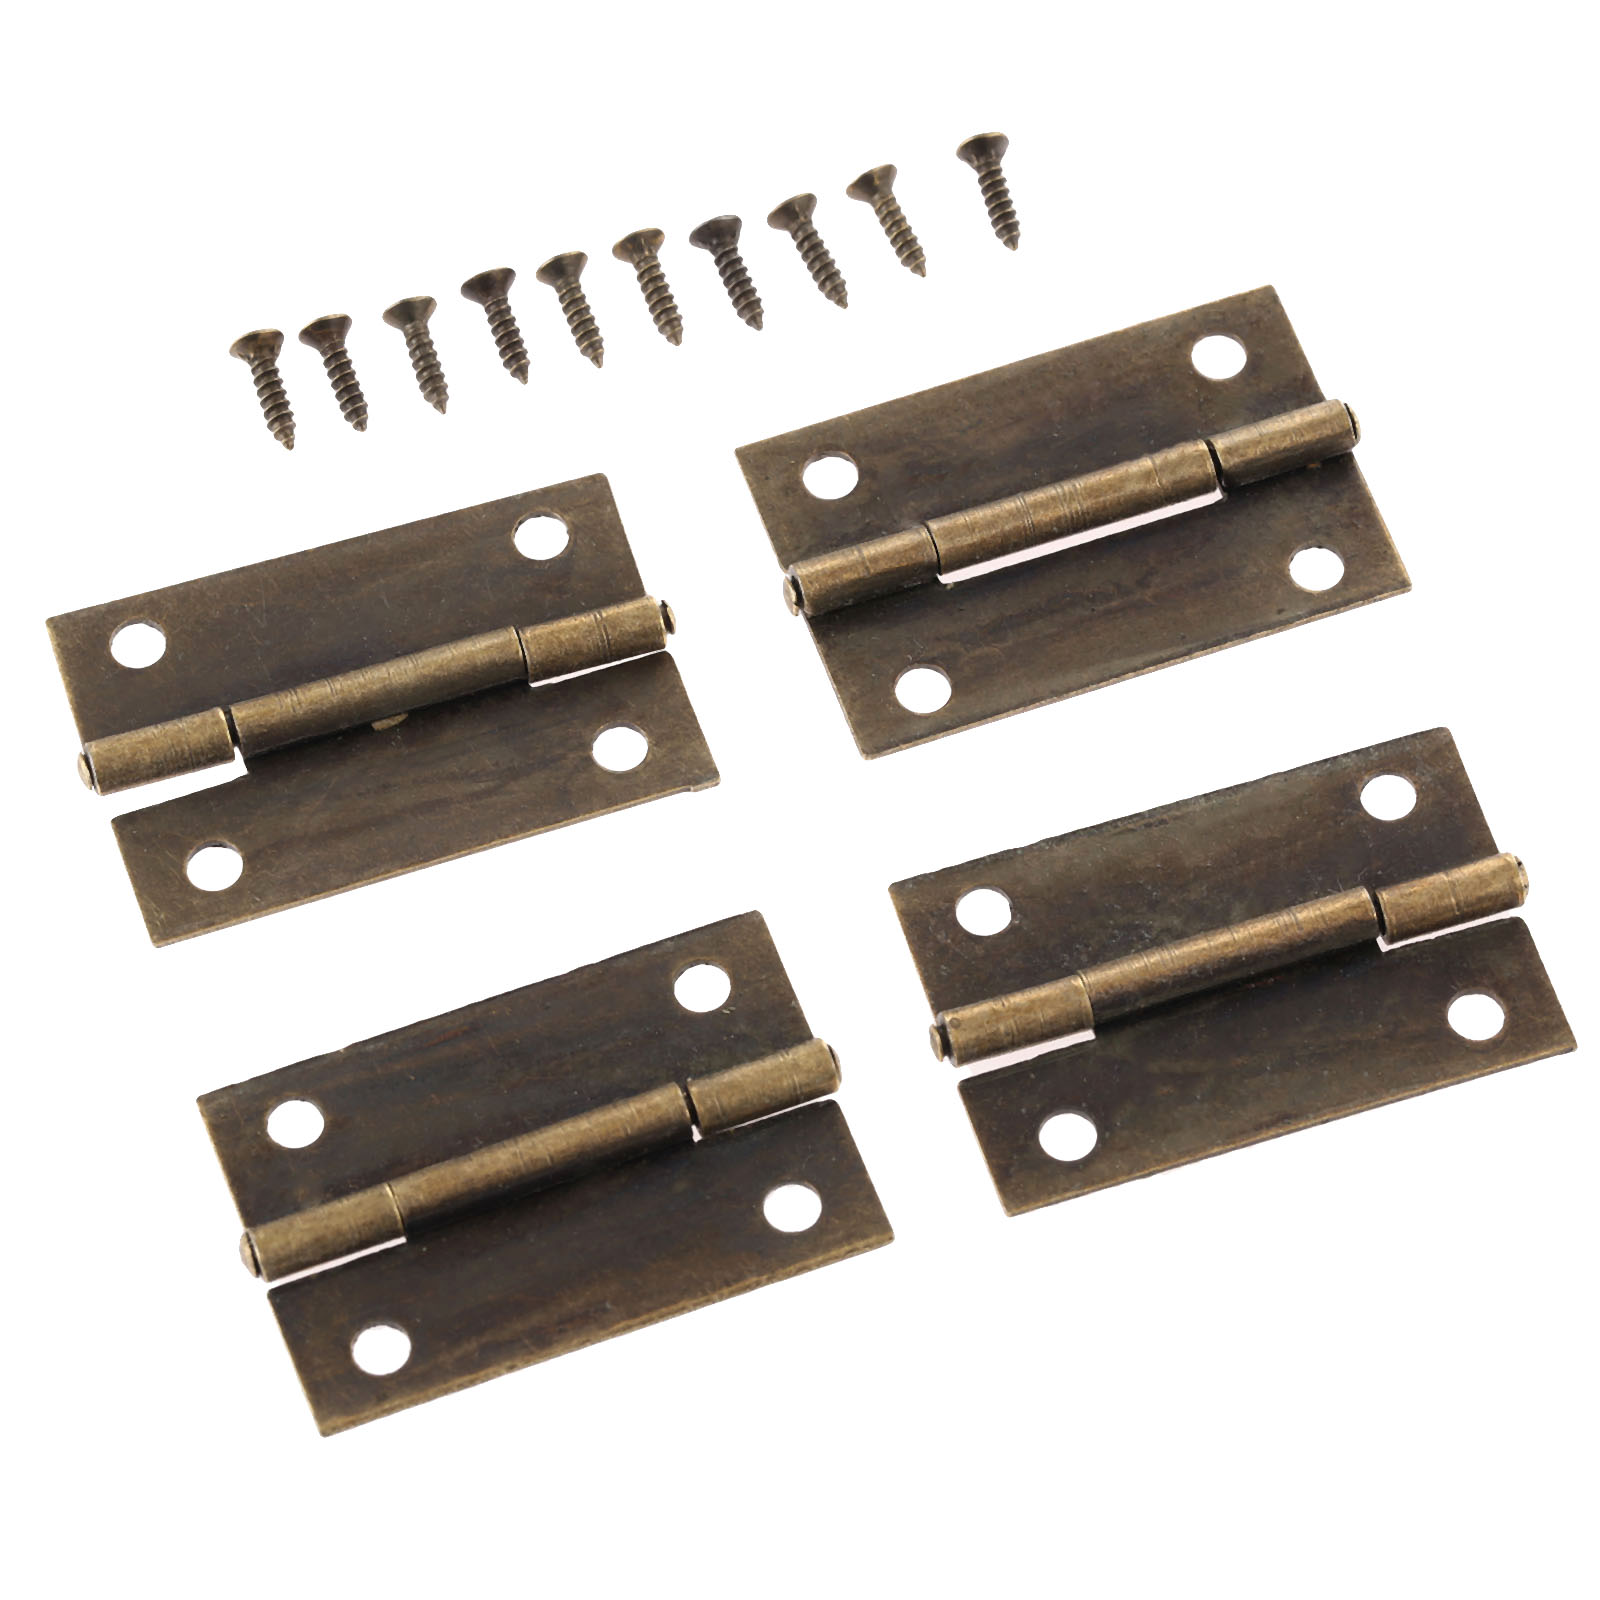 4Pcs Antique Bronze Furniture Hinges Jewelry Box Cabinet Drawer Door Butt Hinge Decorative Hinges for Furniture Hardware 38*25mm lhx p0fh04 1 39 57mm bronze hinge for jewelry box cabinet furniture diy family hardware